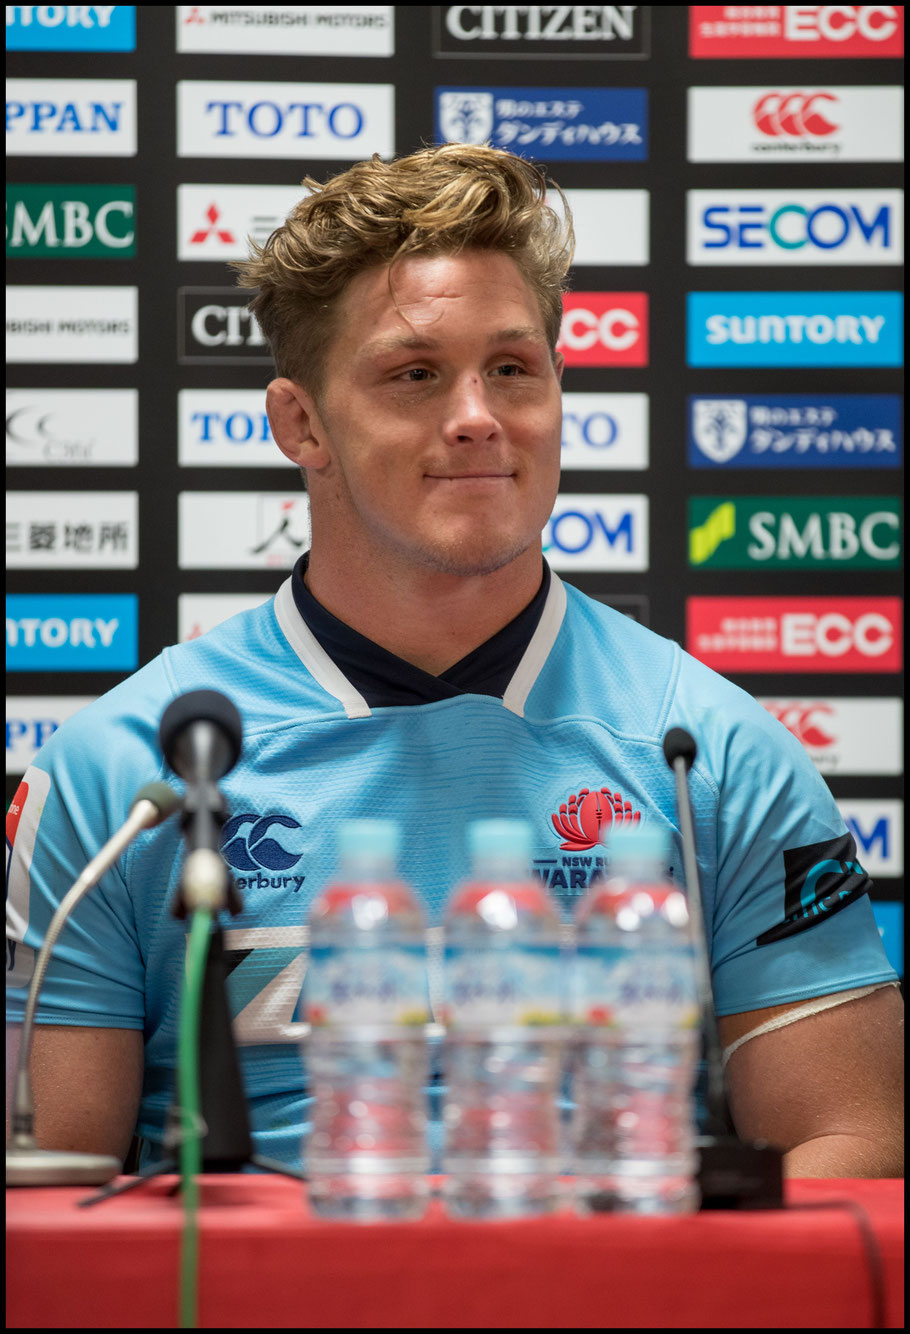 Waratahs' Captain Michael Hooper – Sachiyo Karamatsu Inside Sport: Japan, April 7th, 2018